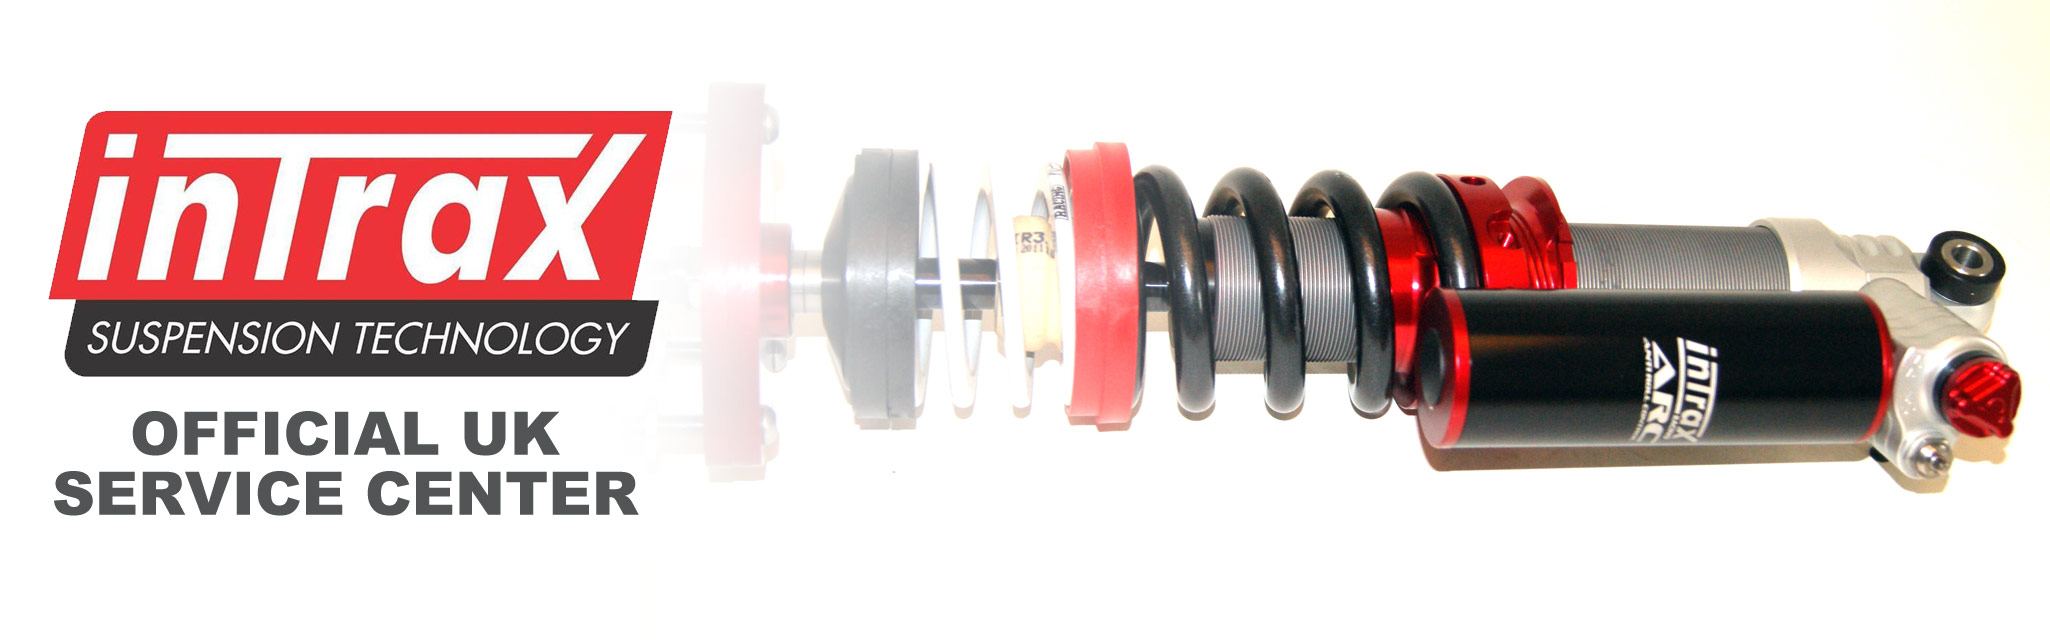 Powerflex bushings